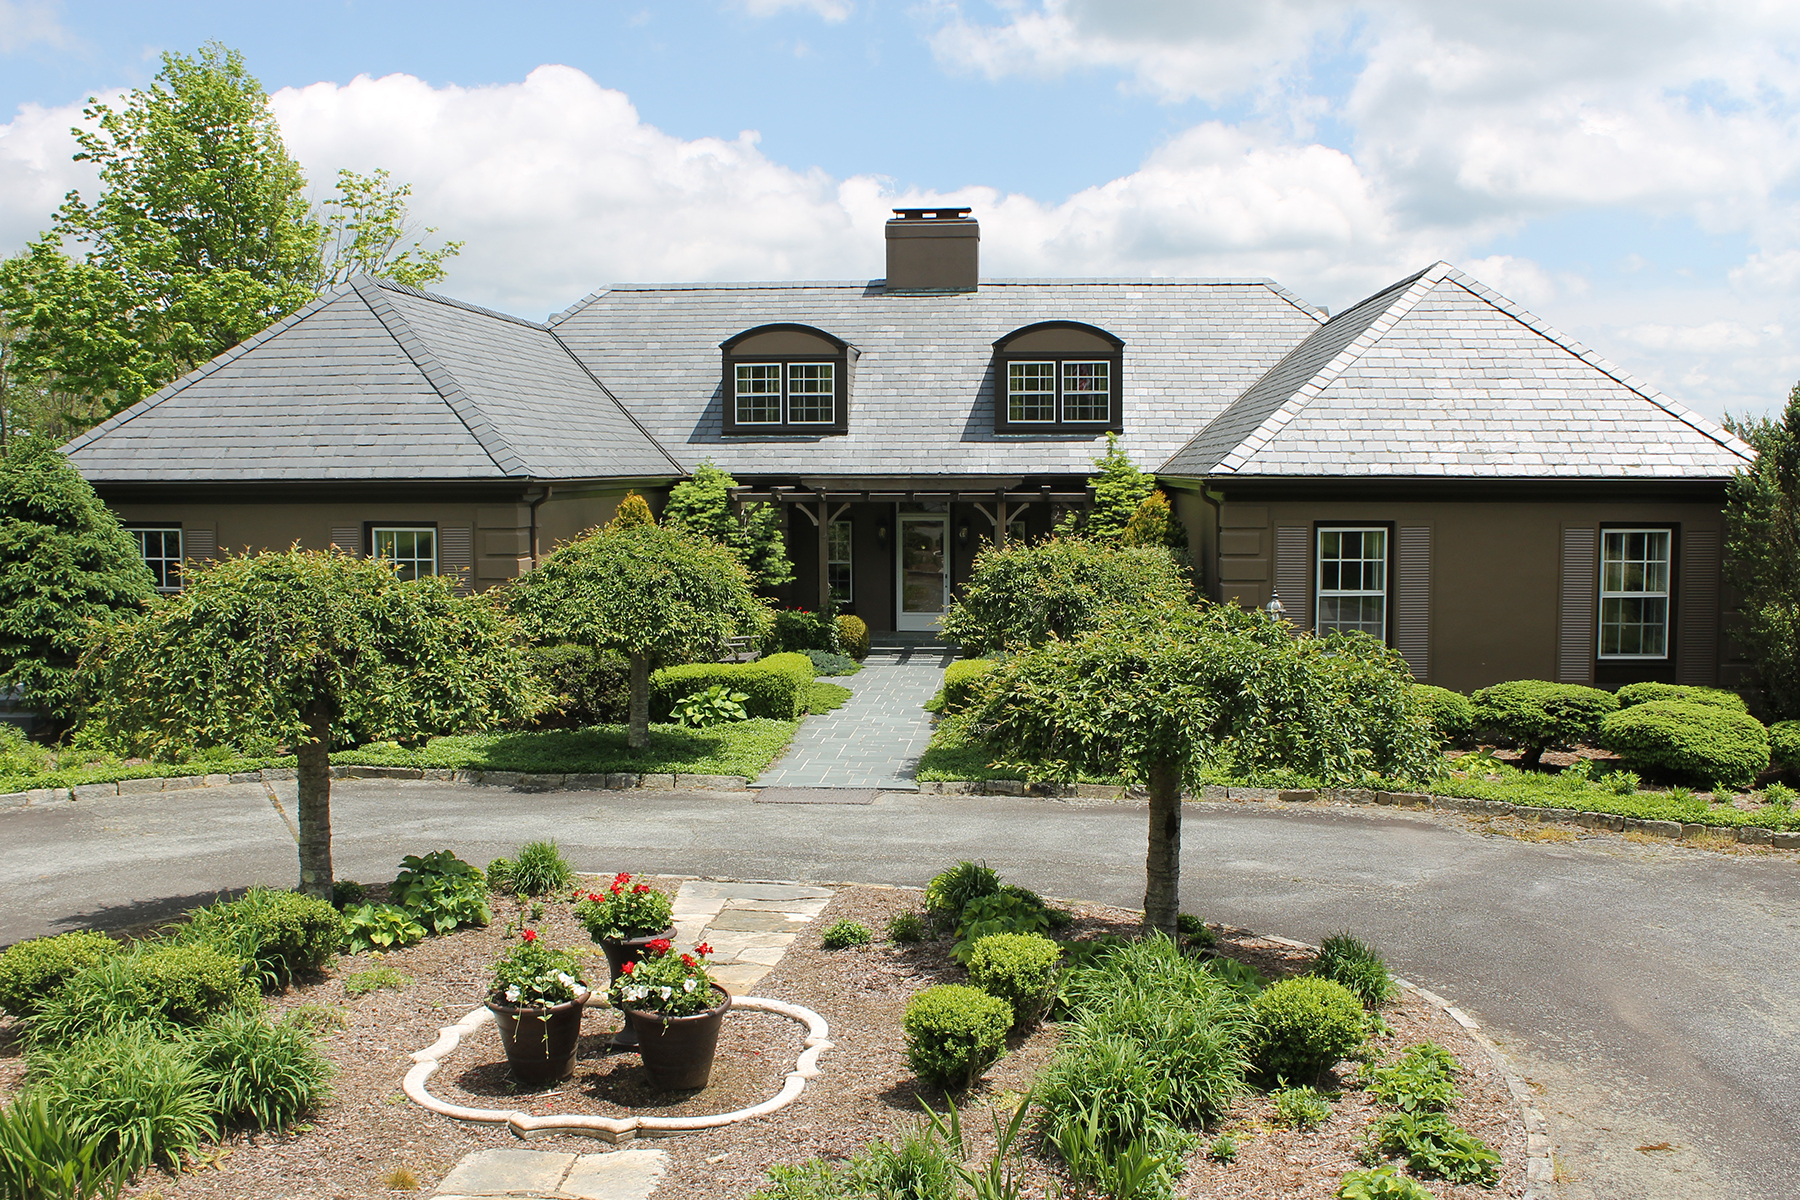 Single Family Home for Sale at BLOWING ROCK 1799 Flat Top Rd, Blowing Rock, North Carolina 28605 United States